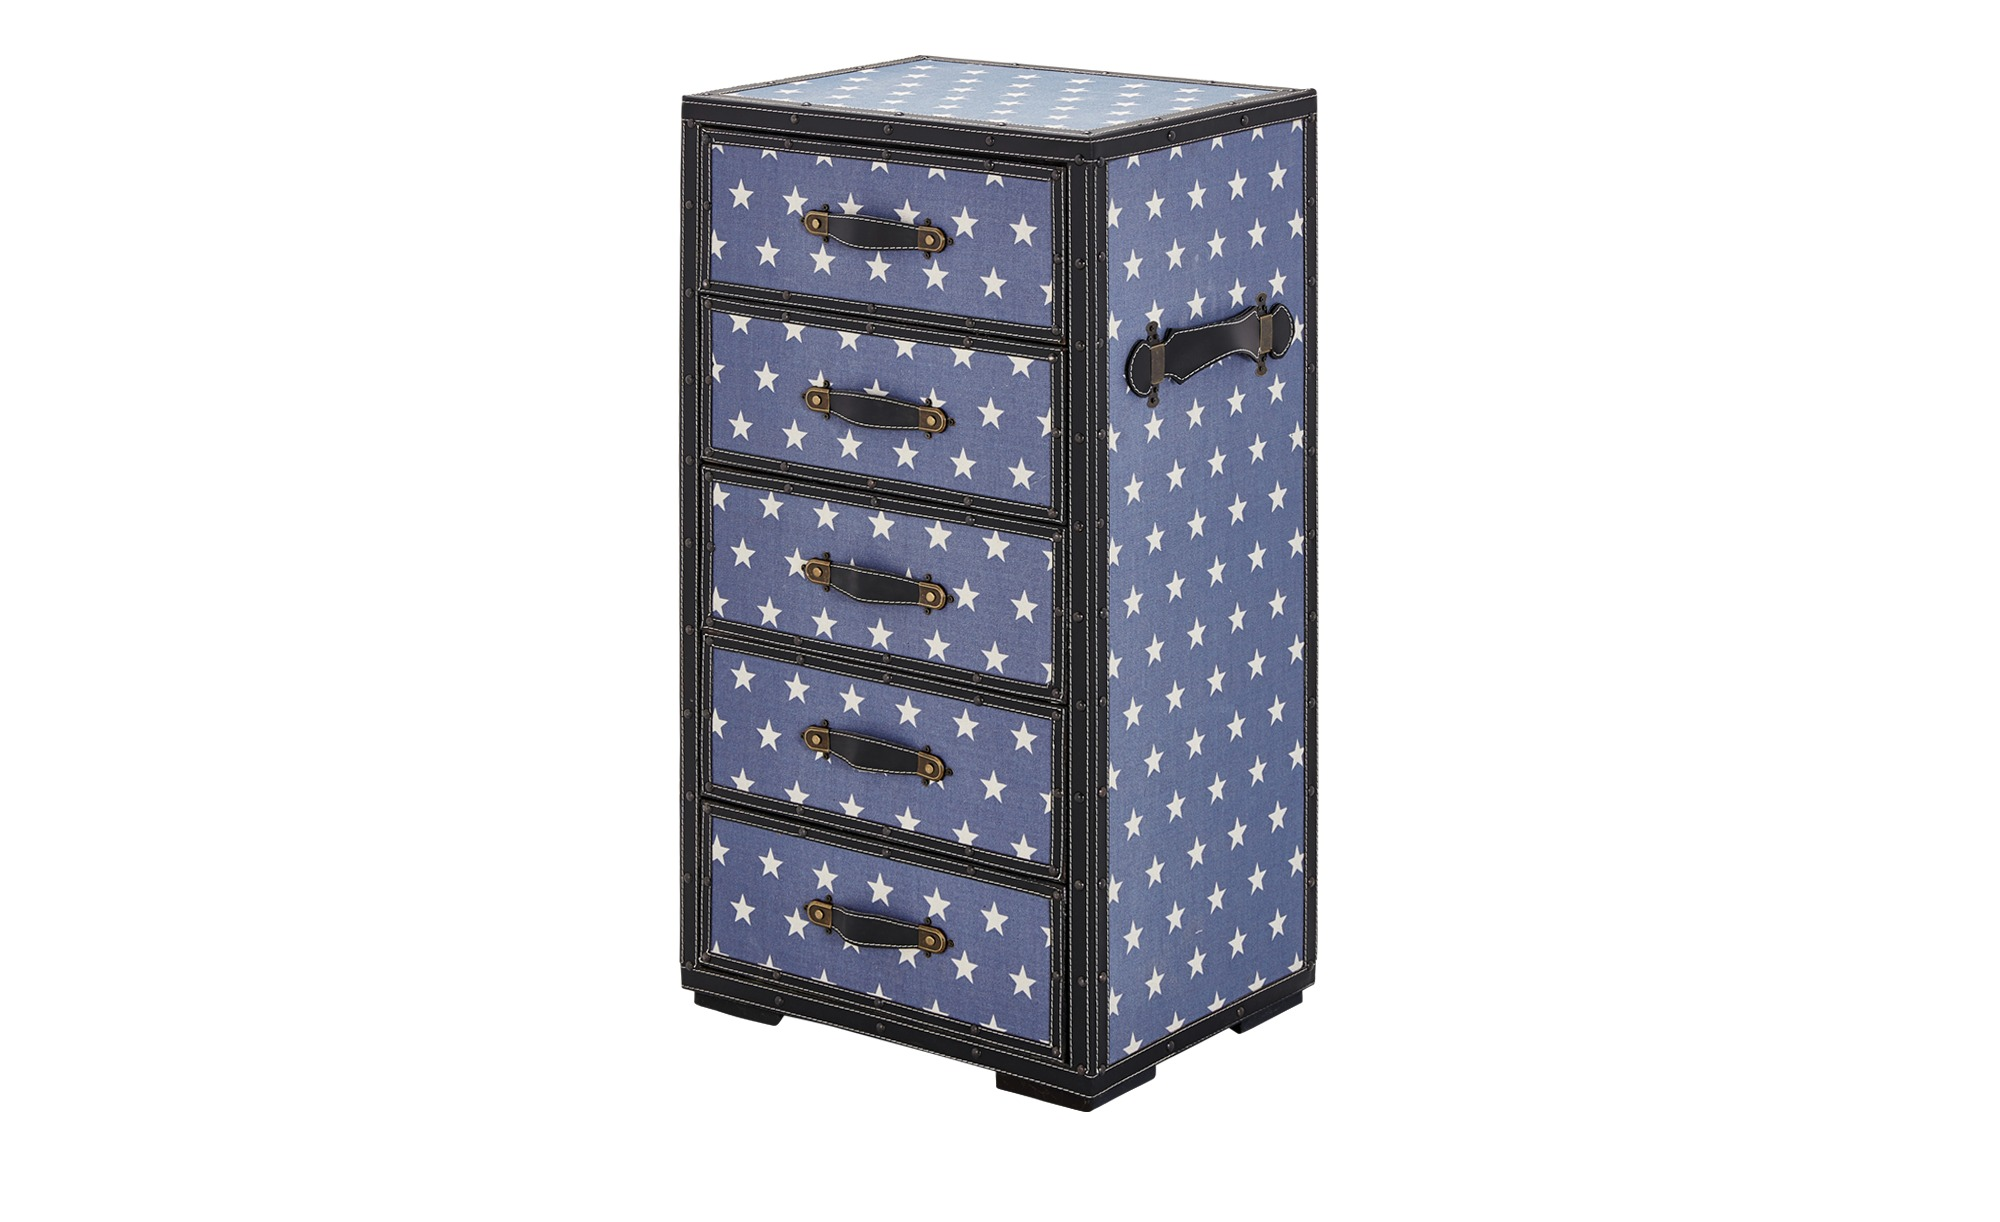 kommode starlight breite 40 cm h he 87 cm blau online kaufen bei woonio. Black Bedroom Furniture Sets. Home Design Ideas